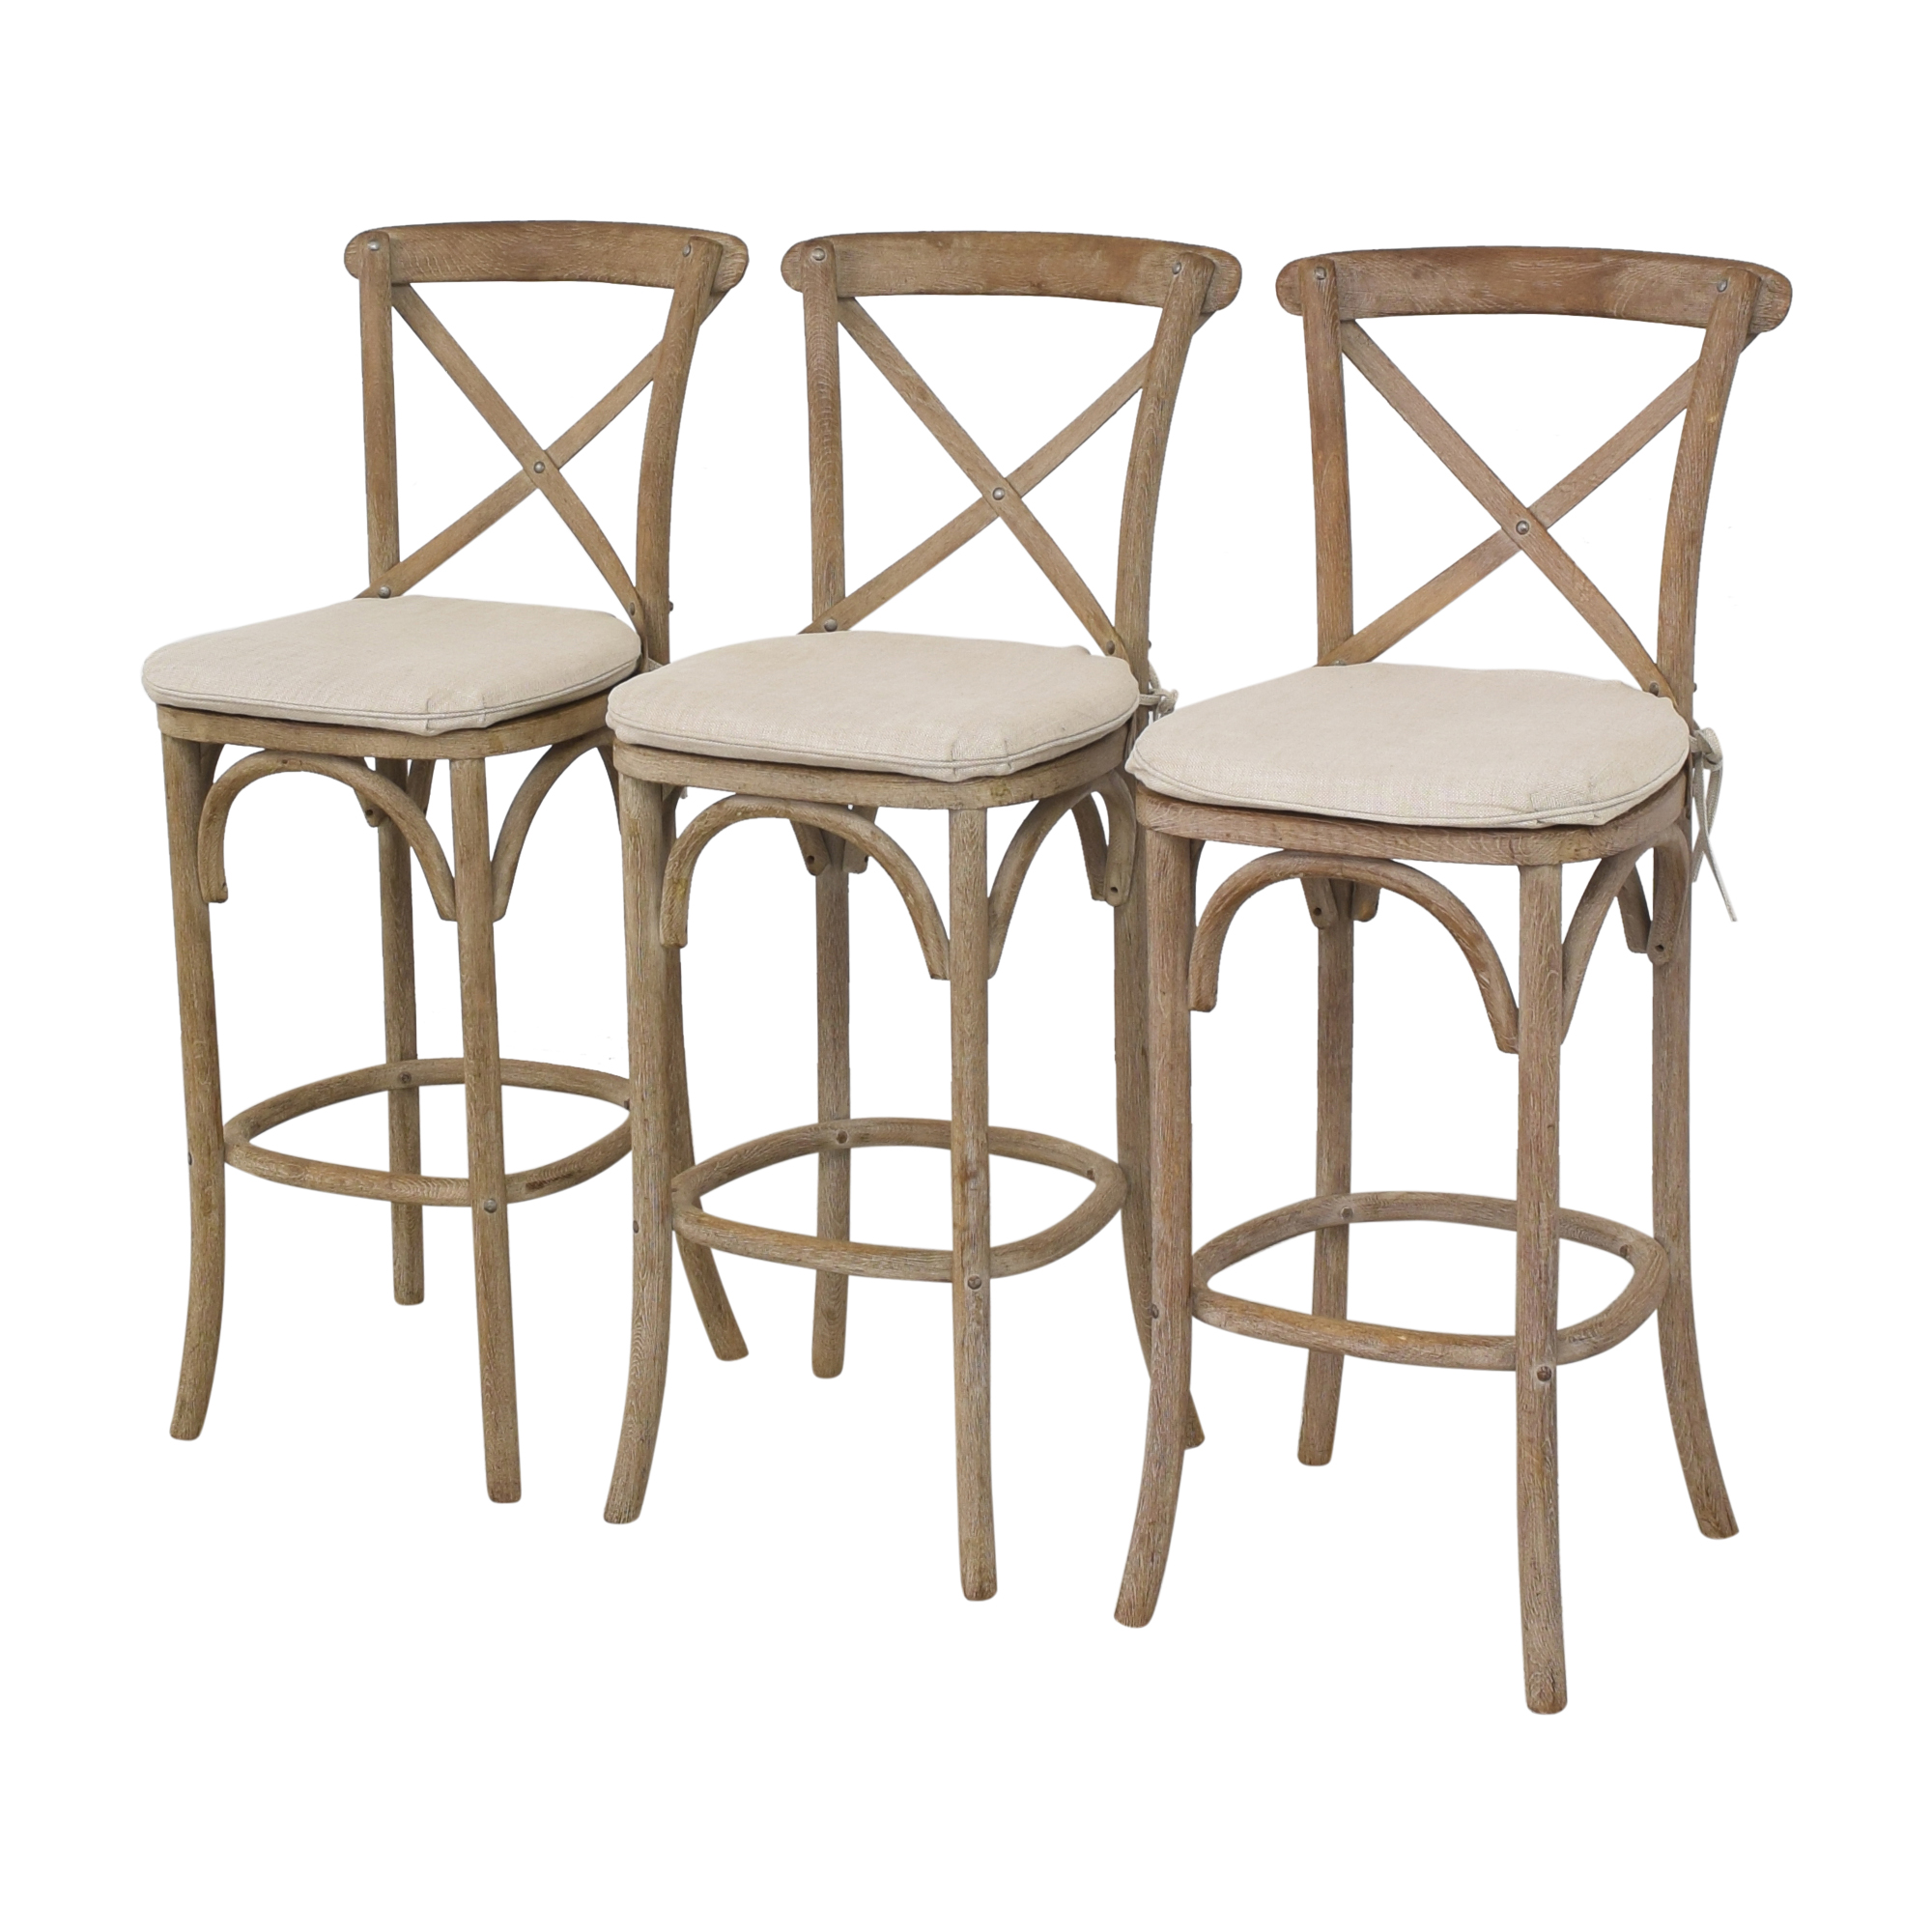 Restoration Hardware Restoration Hardware Madeleine Armless Bar Stools light brown and beige